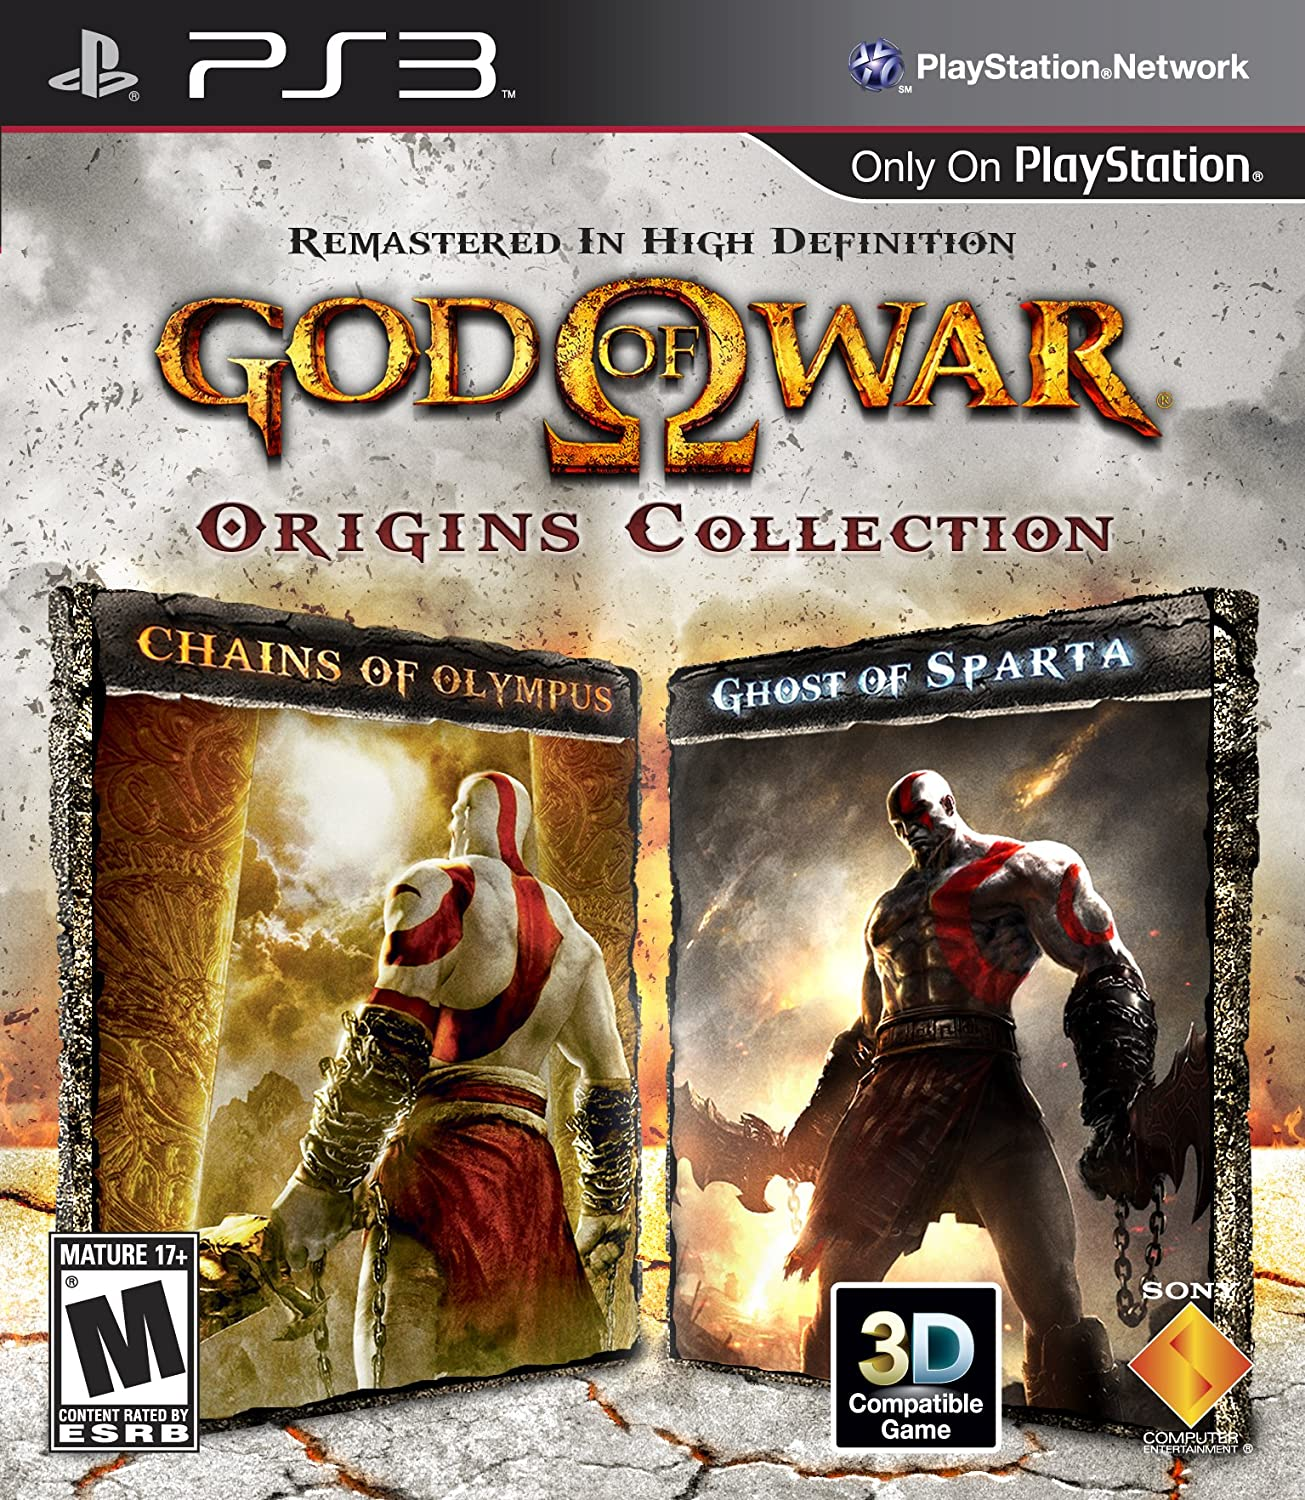 Honest God Of War Steelbook no Disc Video Games & Consoles